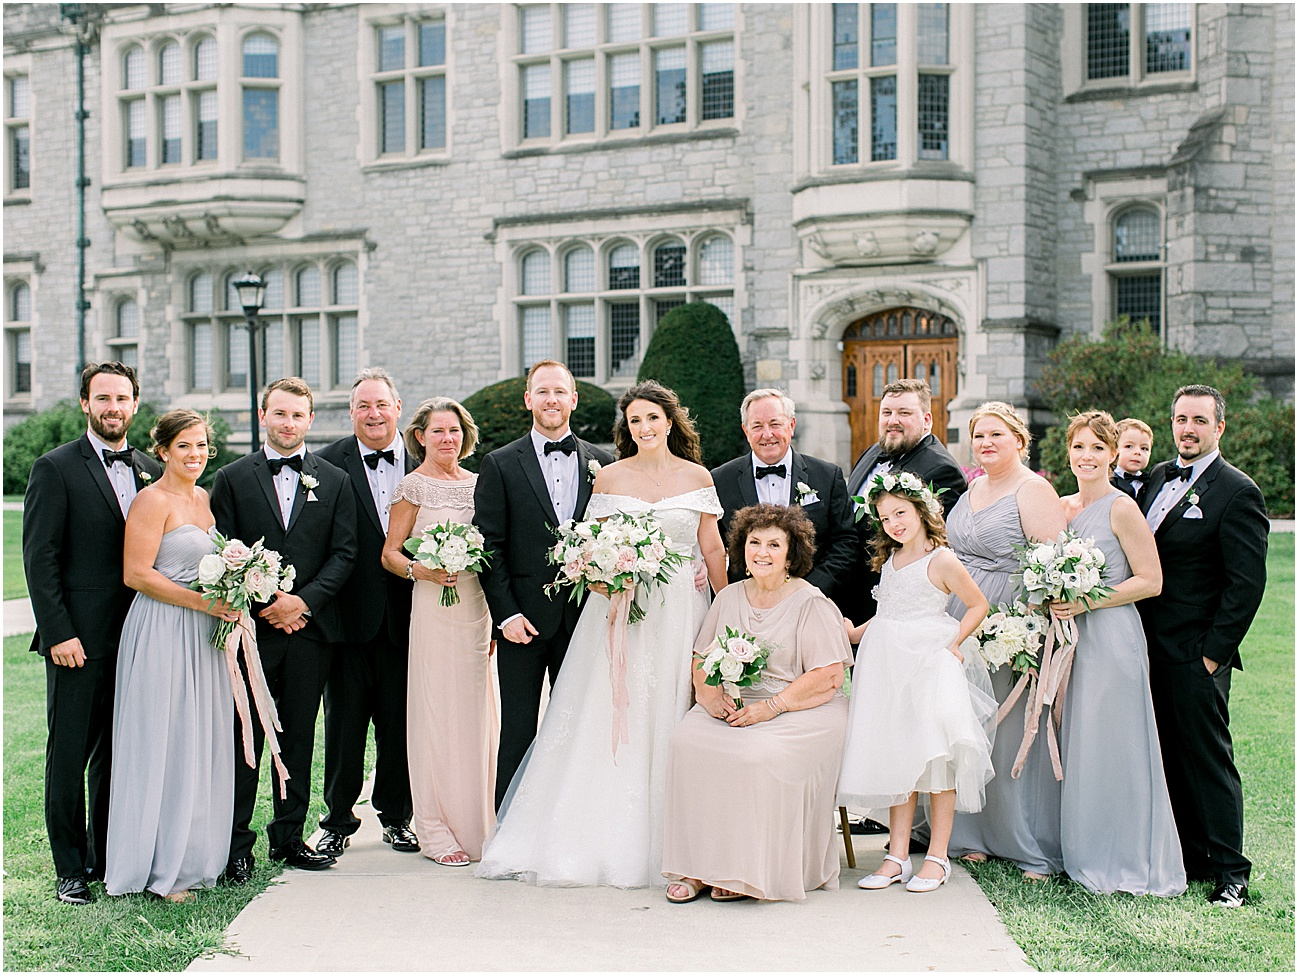 our_wedding_day_troy_NY_emma_willard_fairy_tale_royal_neutral_beauty_and_the_beast_moped_private_estate_cape_cod_boston_wedding_photographer_meredith_jane_photography_chris_kerr_photo_1979.jpg